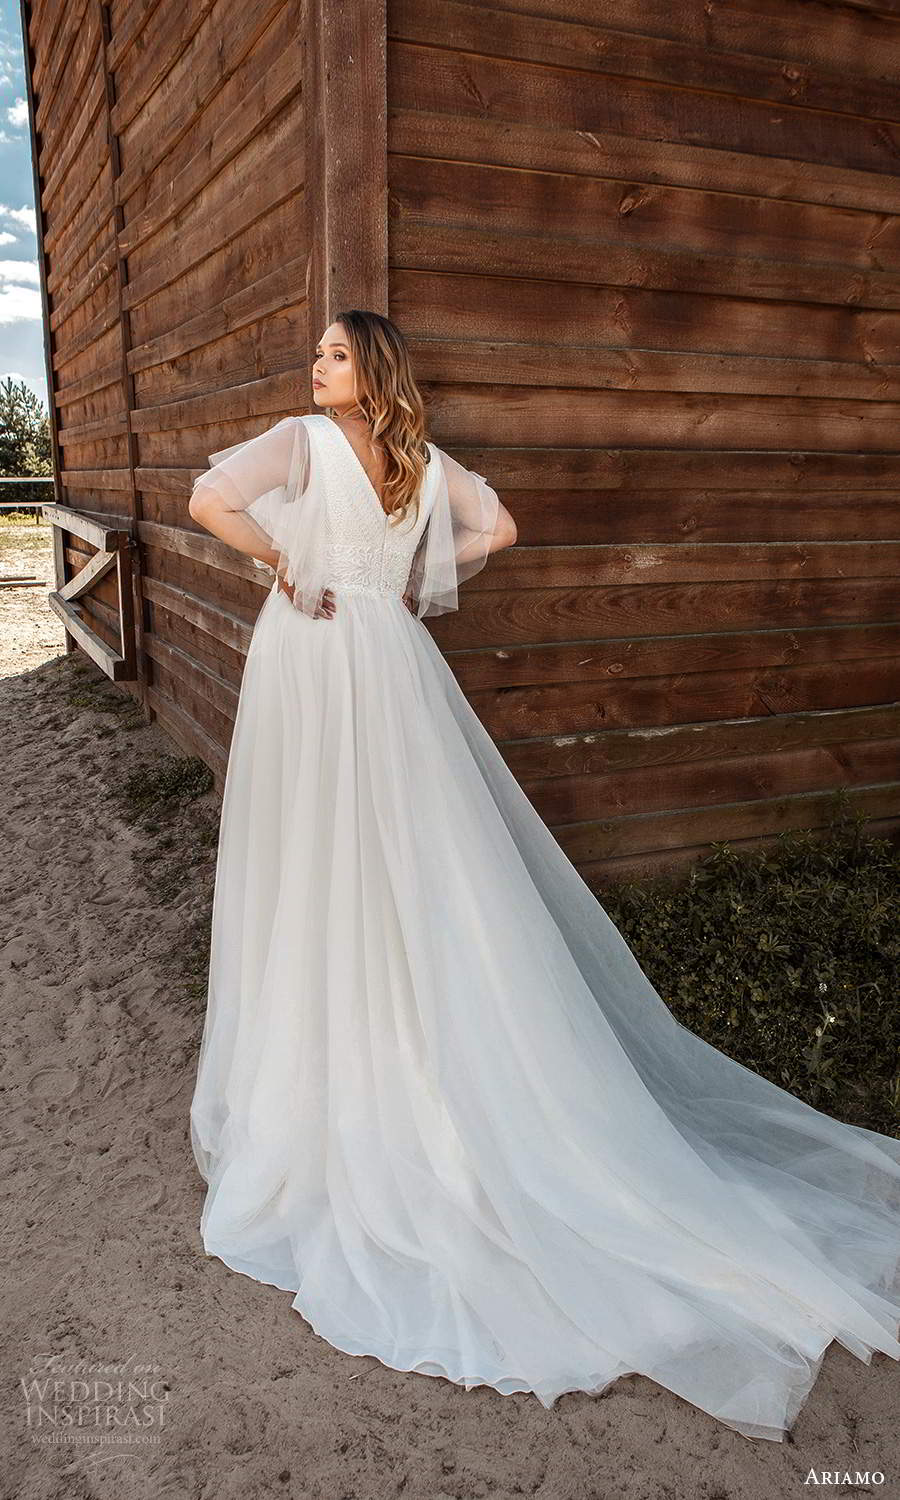 ariamo 2021 plus bridal sheer flutter sleeves v neckline embellished bodice a line ball gown wedding dress chapel train (14) bv